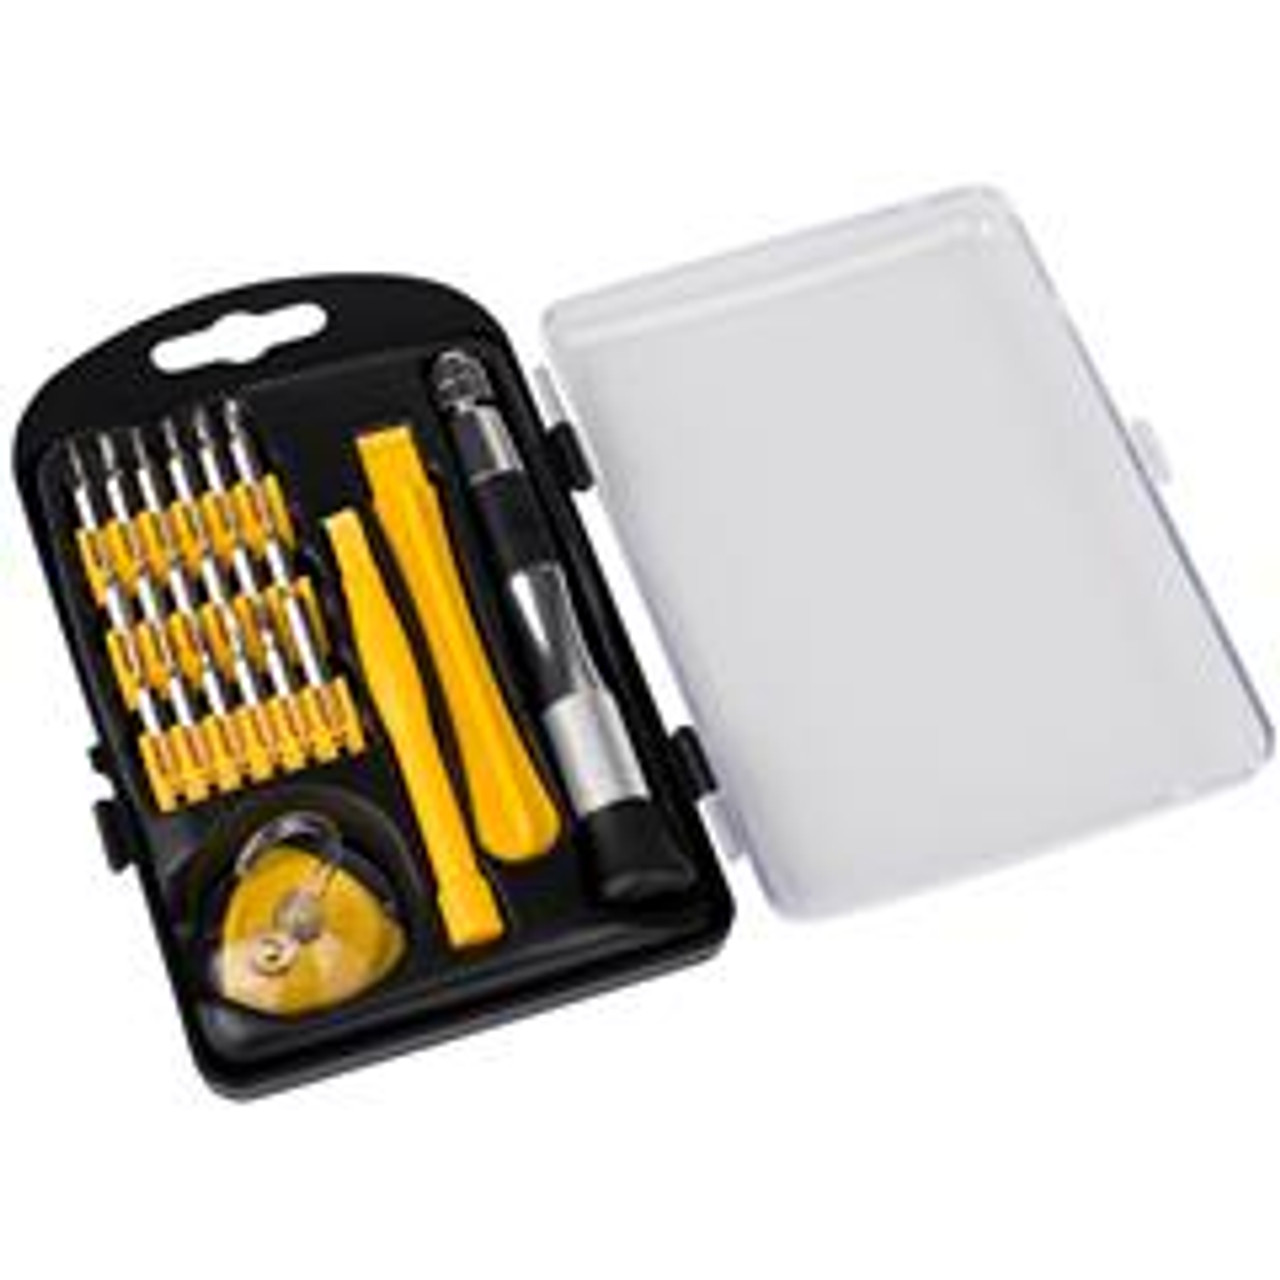 23 Pc Precision Screwdriver Set